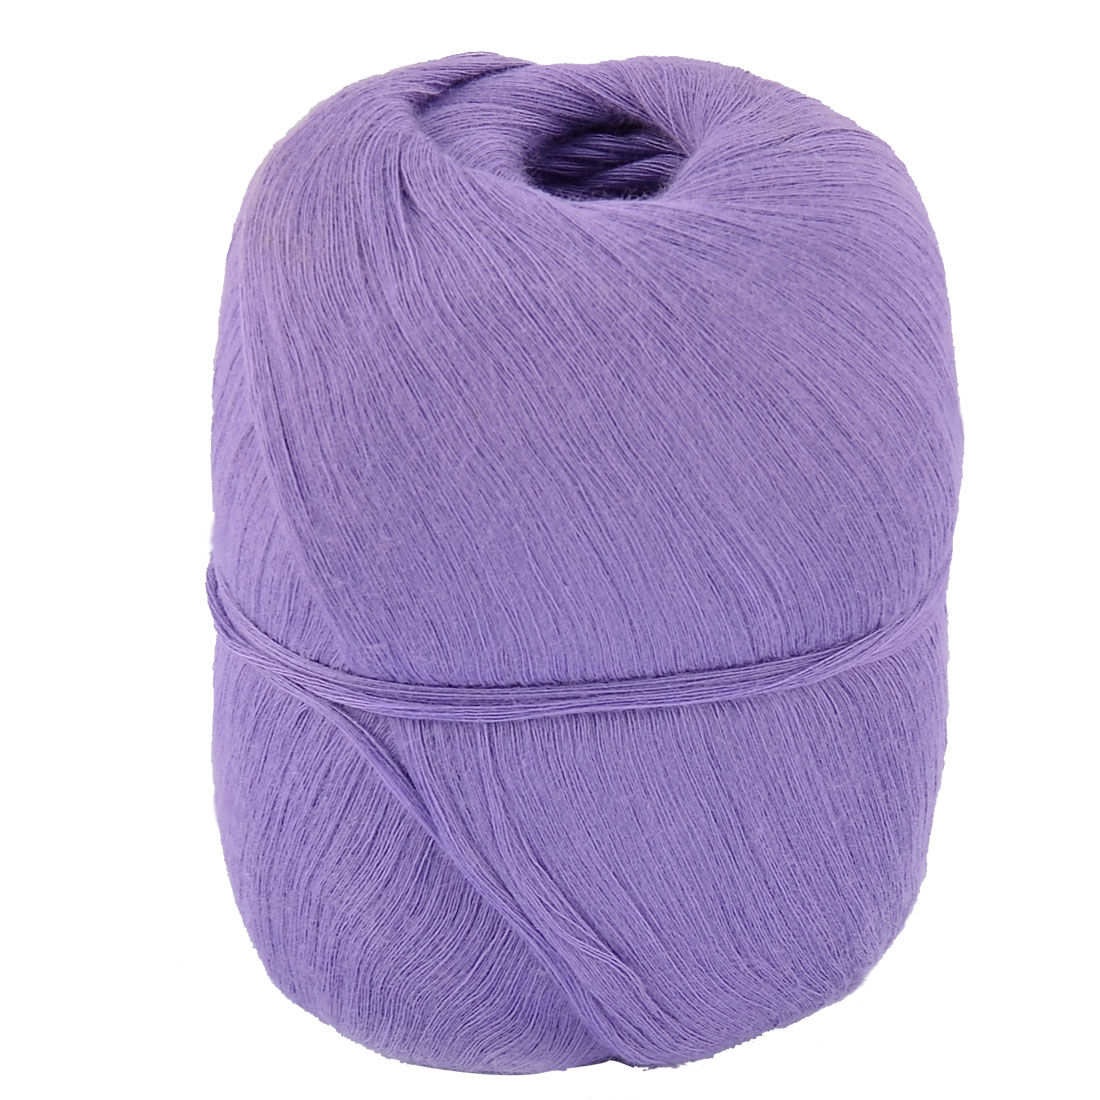 Hand Tatting Knitting Cotton Crochet Thread Embroidery Craft Yarn Purple